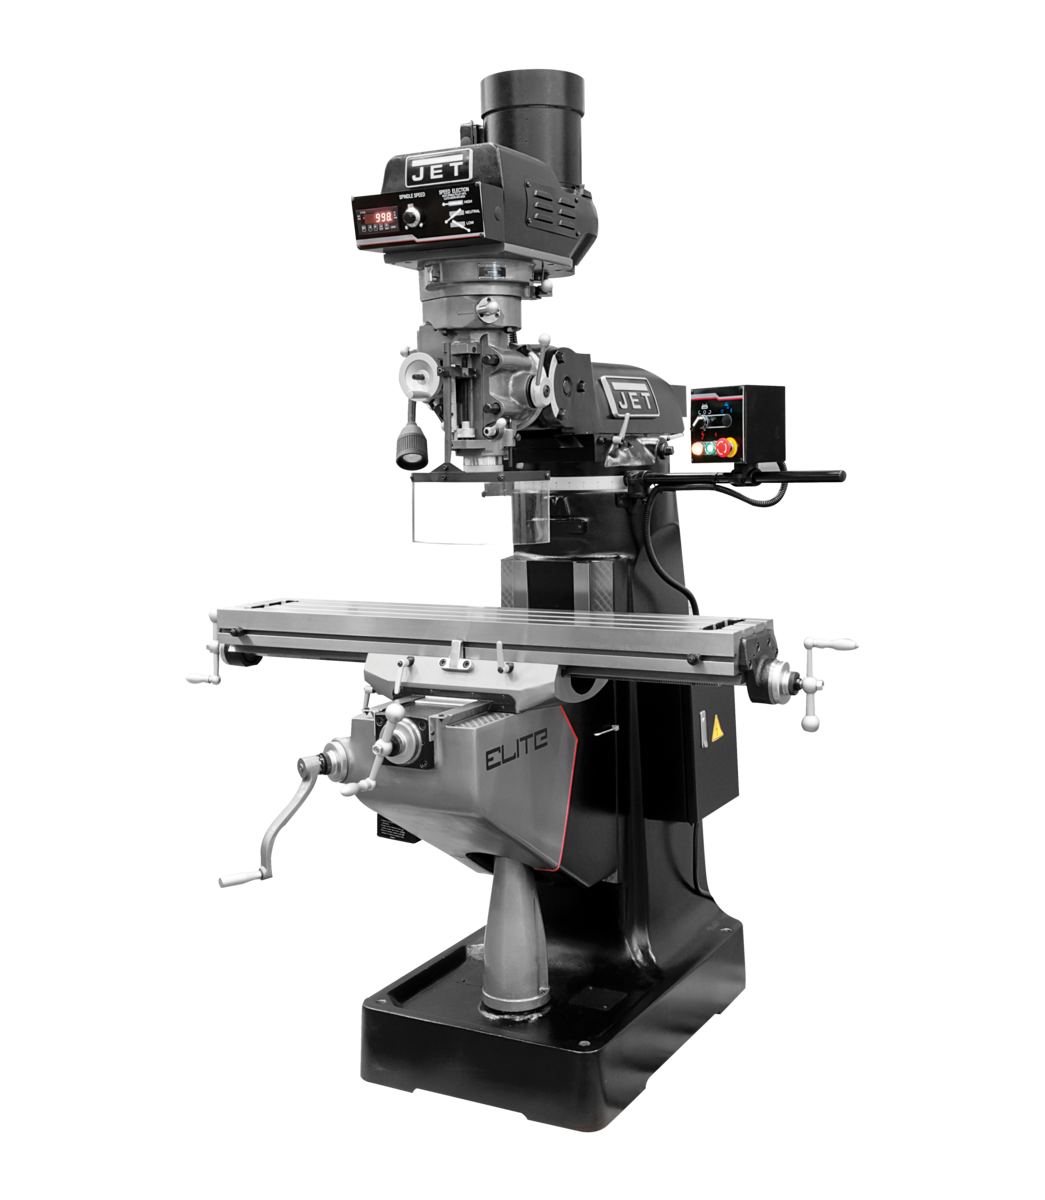 EVS-949 Mill with 3-Axis ACU-RITE 203 (Knee) DRO and Servo X, Y, Z-Axis Powerfeeds and USA Air Powered Draw Bar